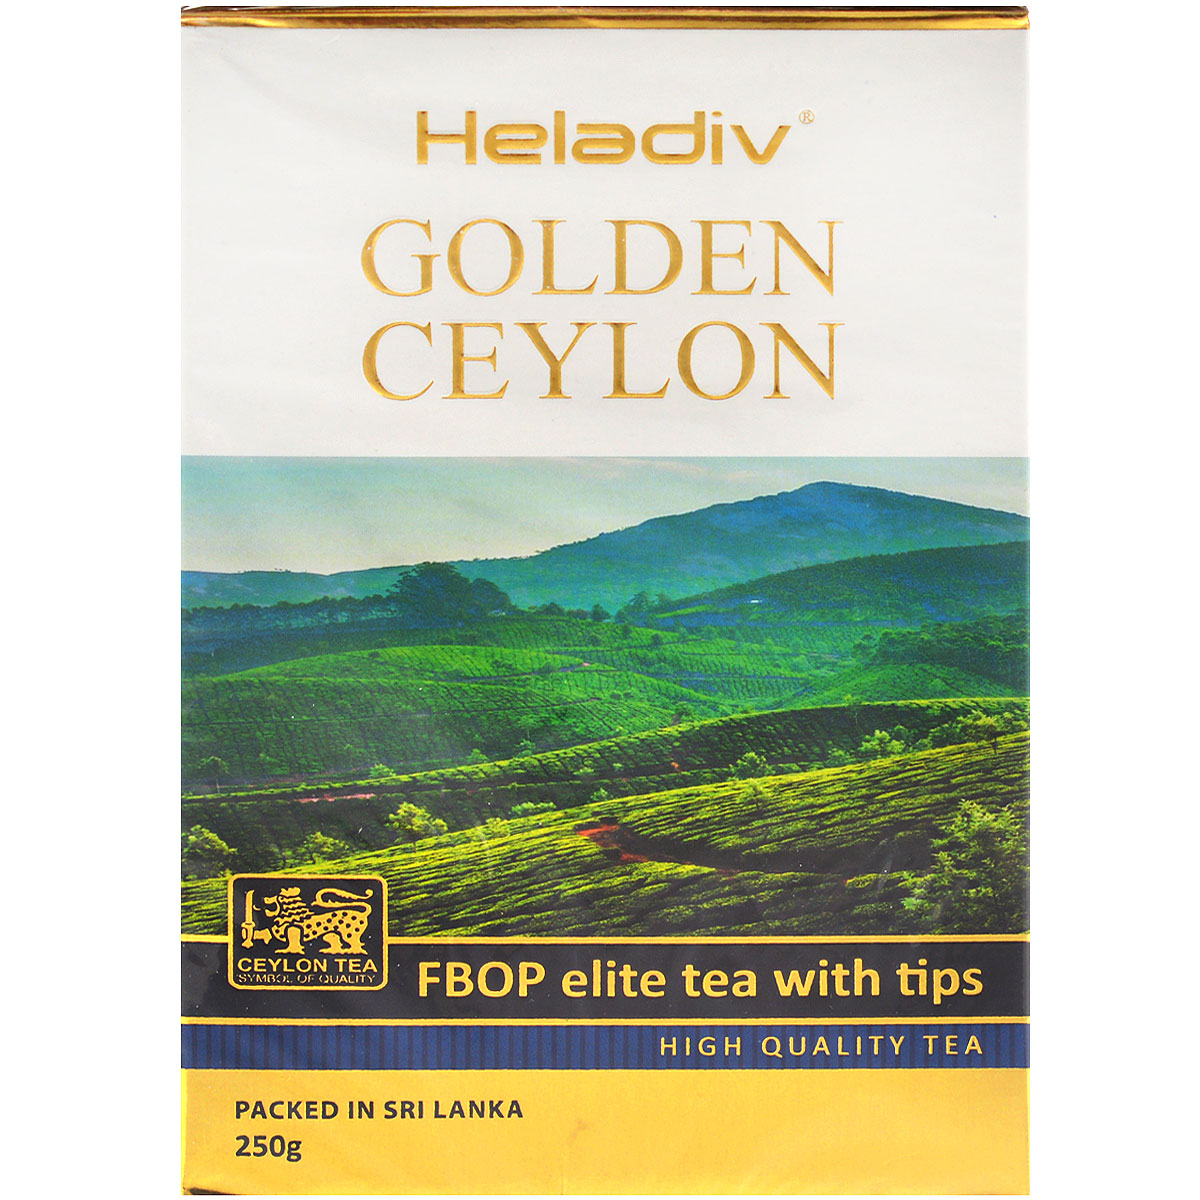 Heladiv Golden Ceylon Fbop Elite Tea with Tips черный листовой чай, 250 г kokololee flax car seat covers for chrysler 300c pt cruiser grand voyager sebring car styling auto accessories car seats